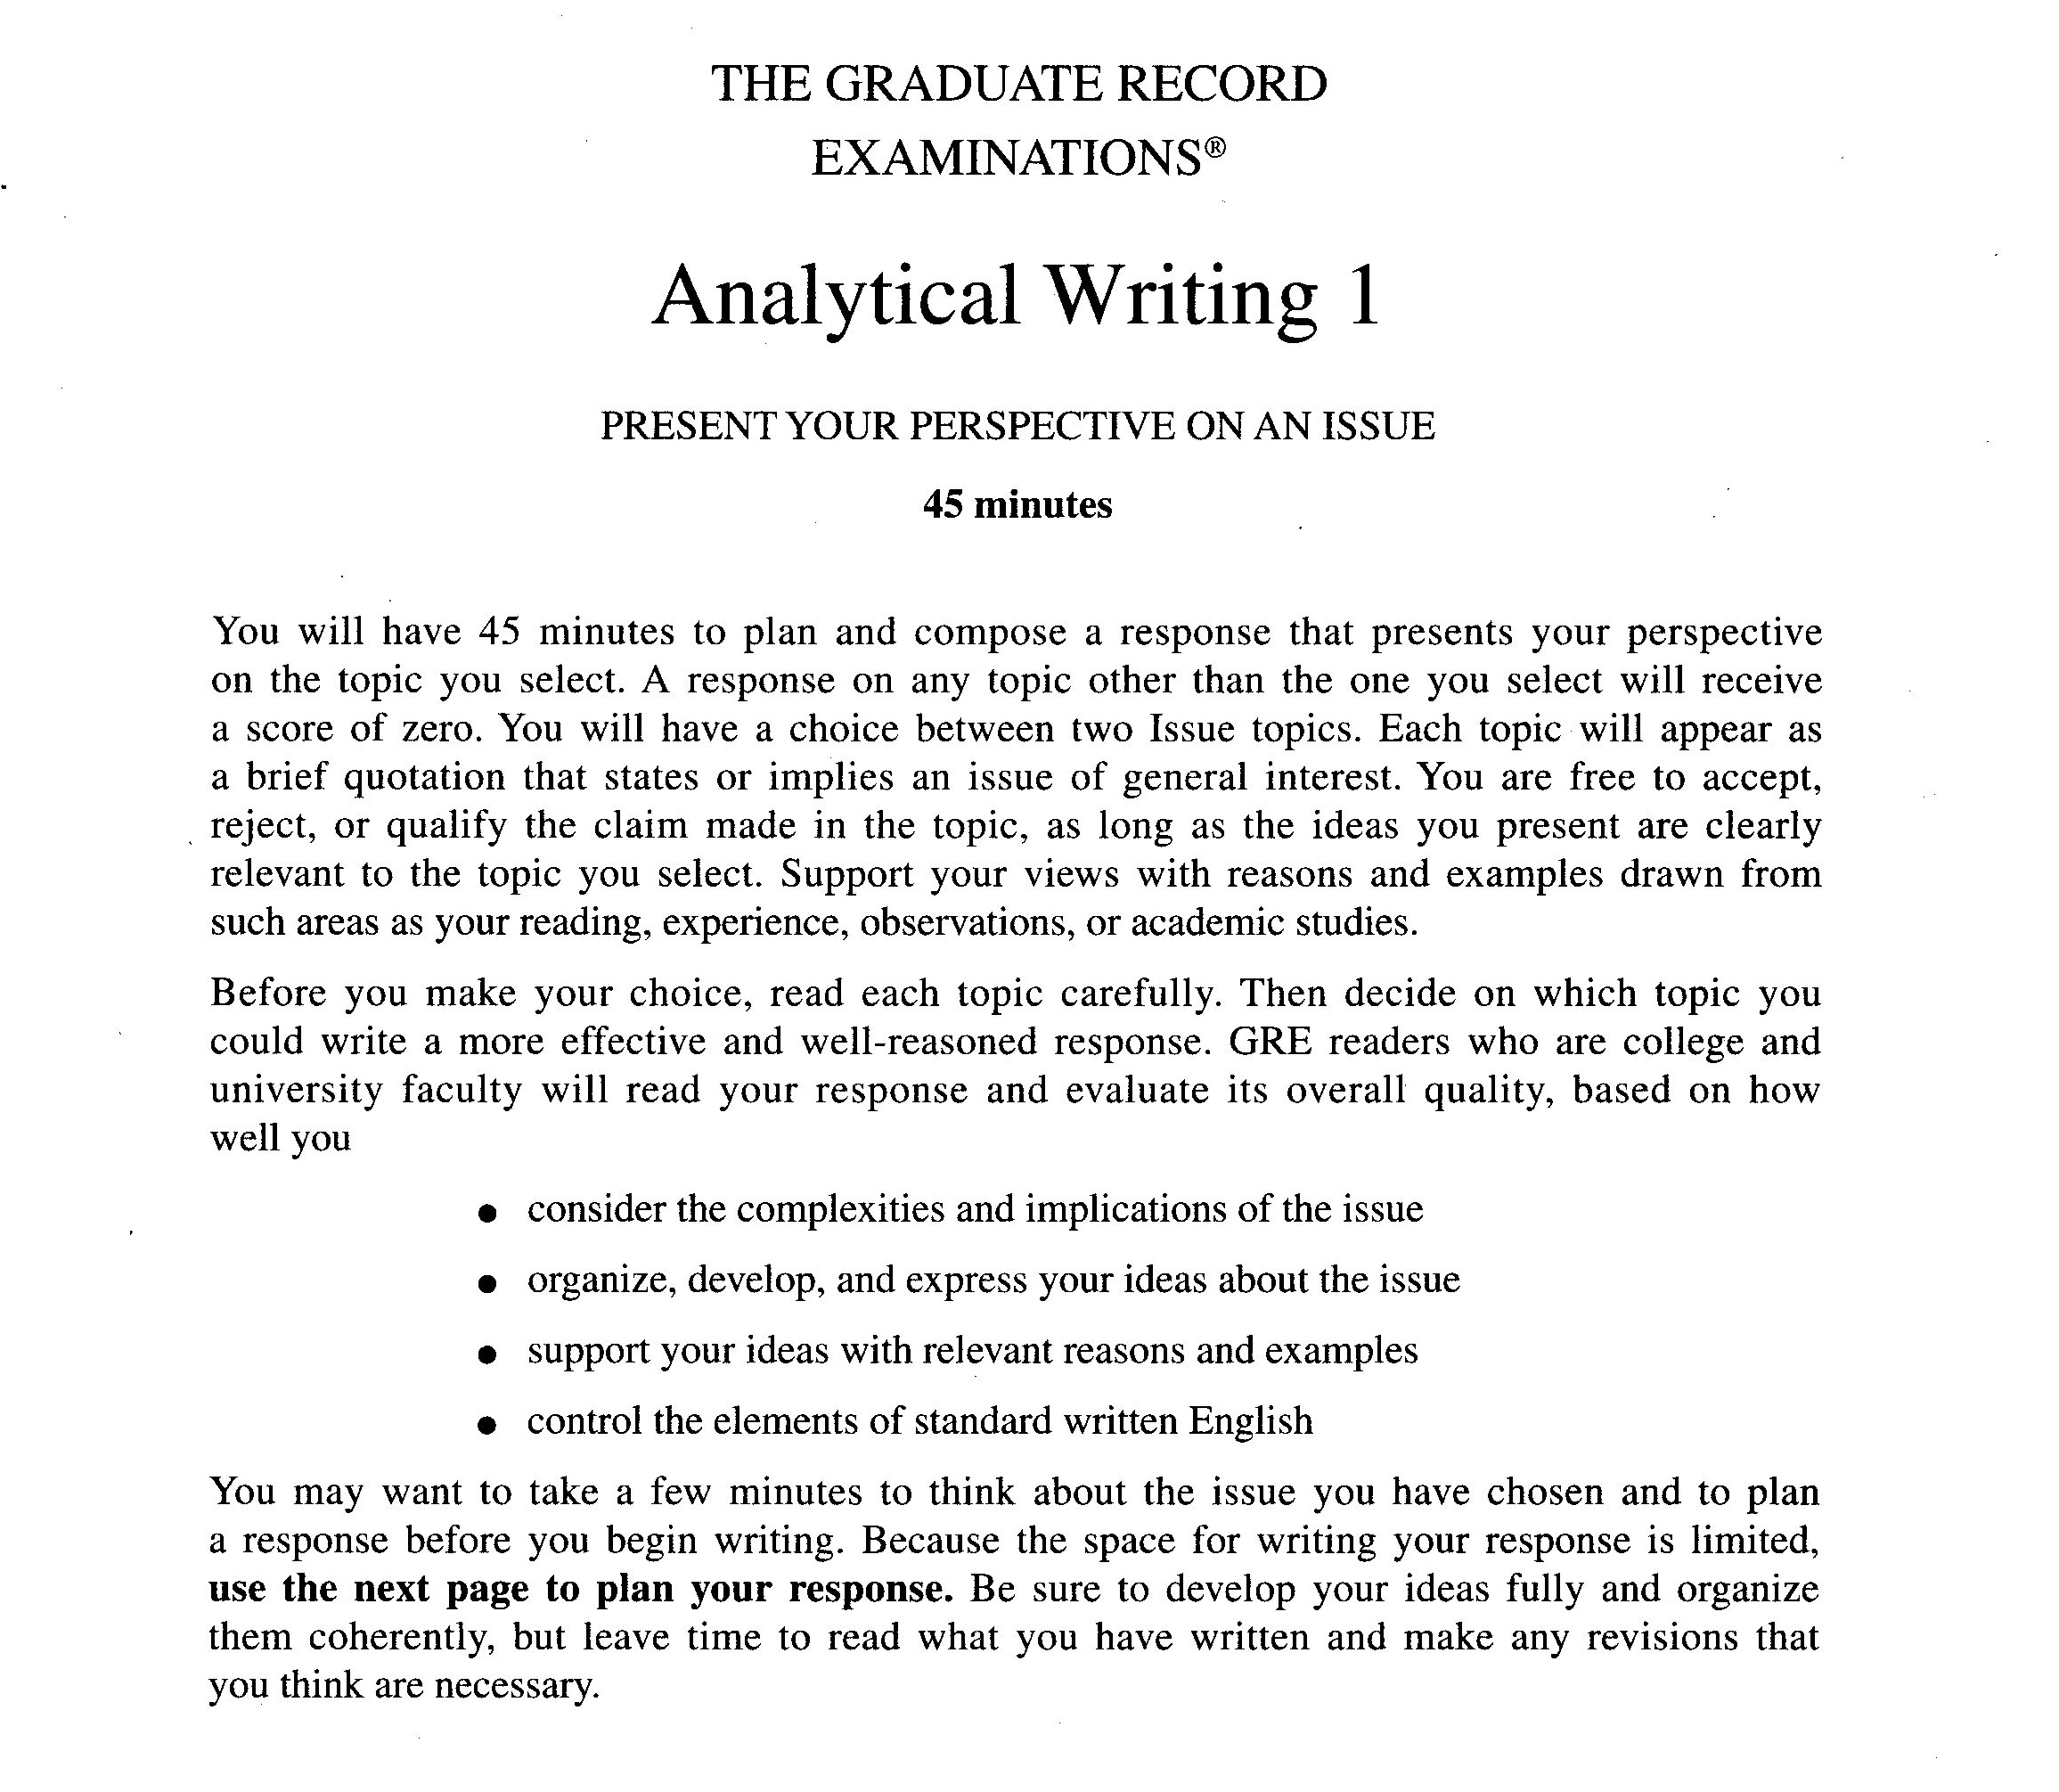 011 Essay Writer Free Analytical20writing20issue20task20directions20for20gre201 Amazing App Generator Software Download Full